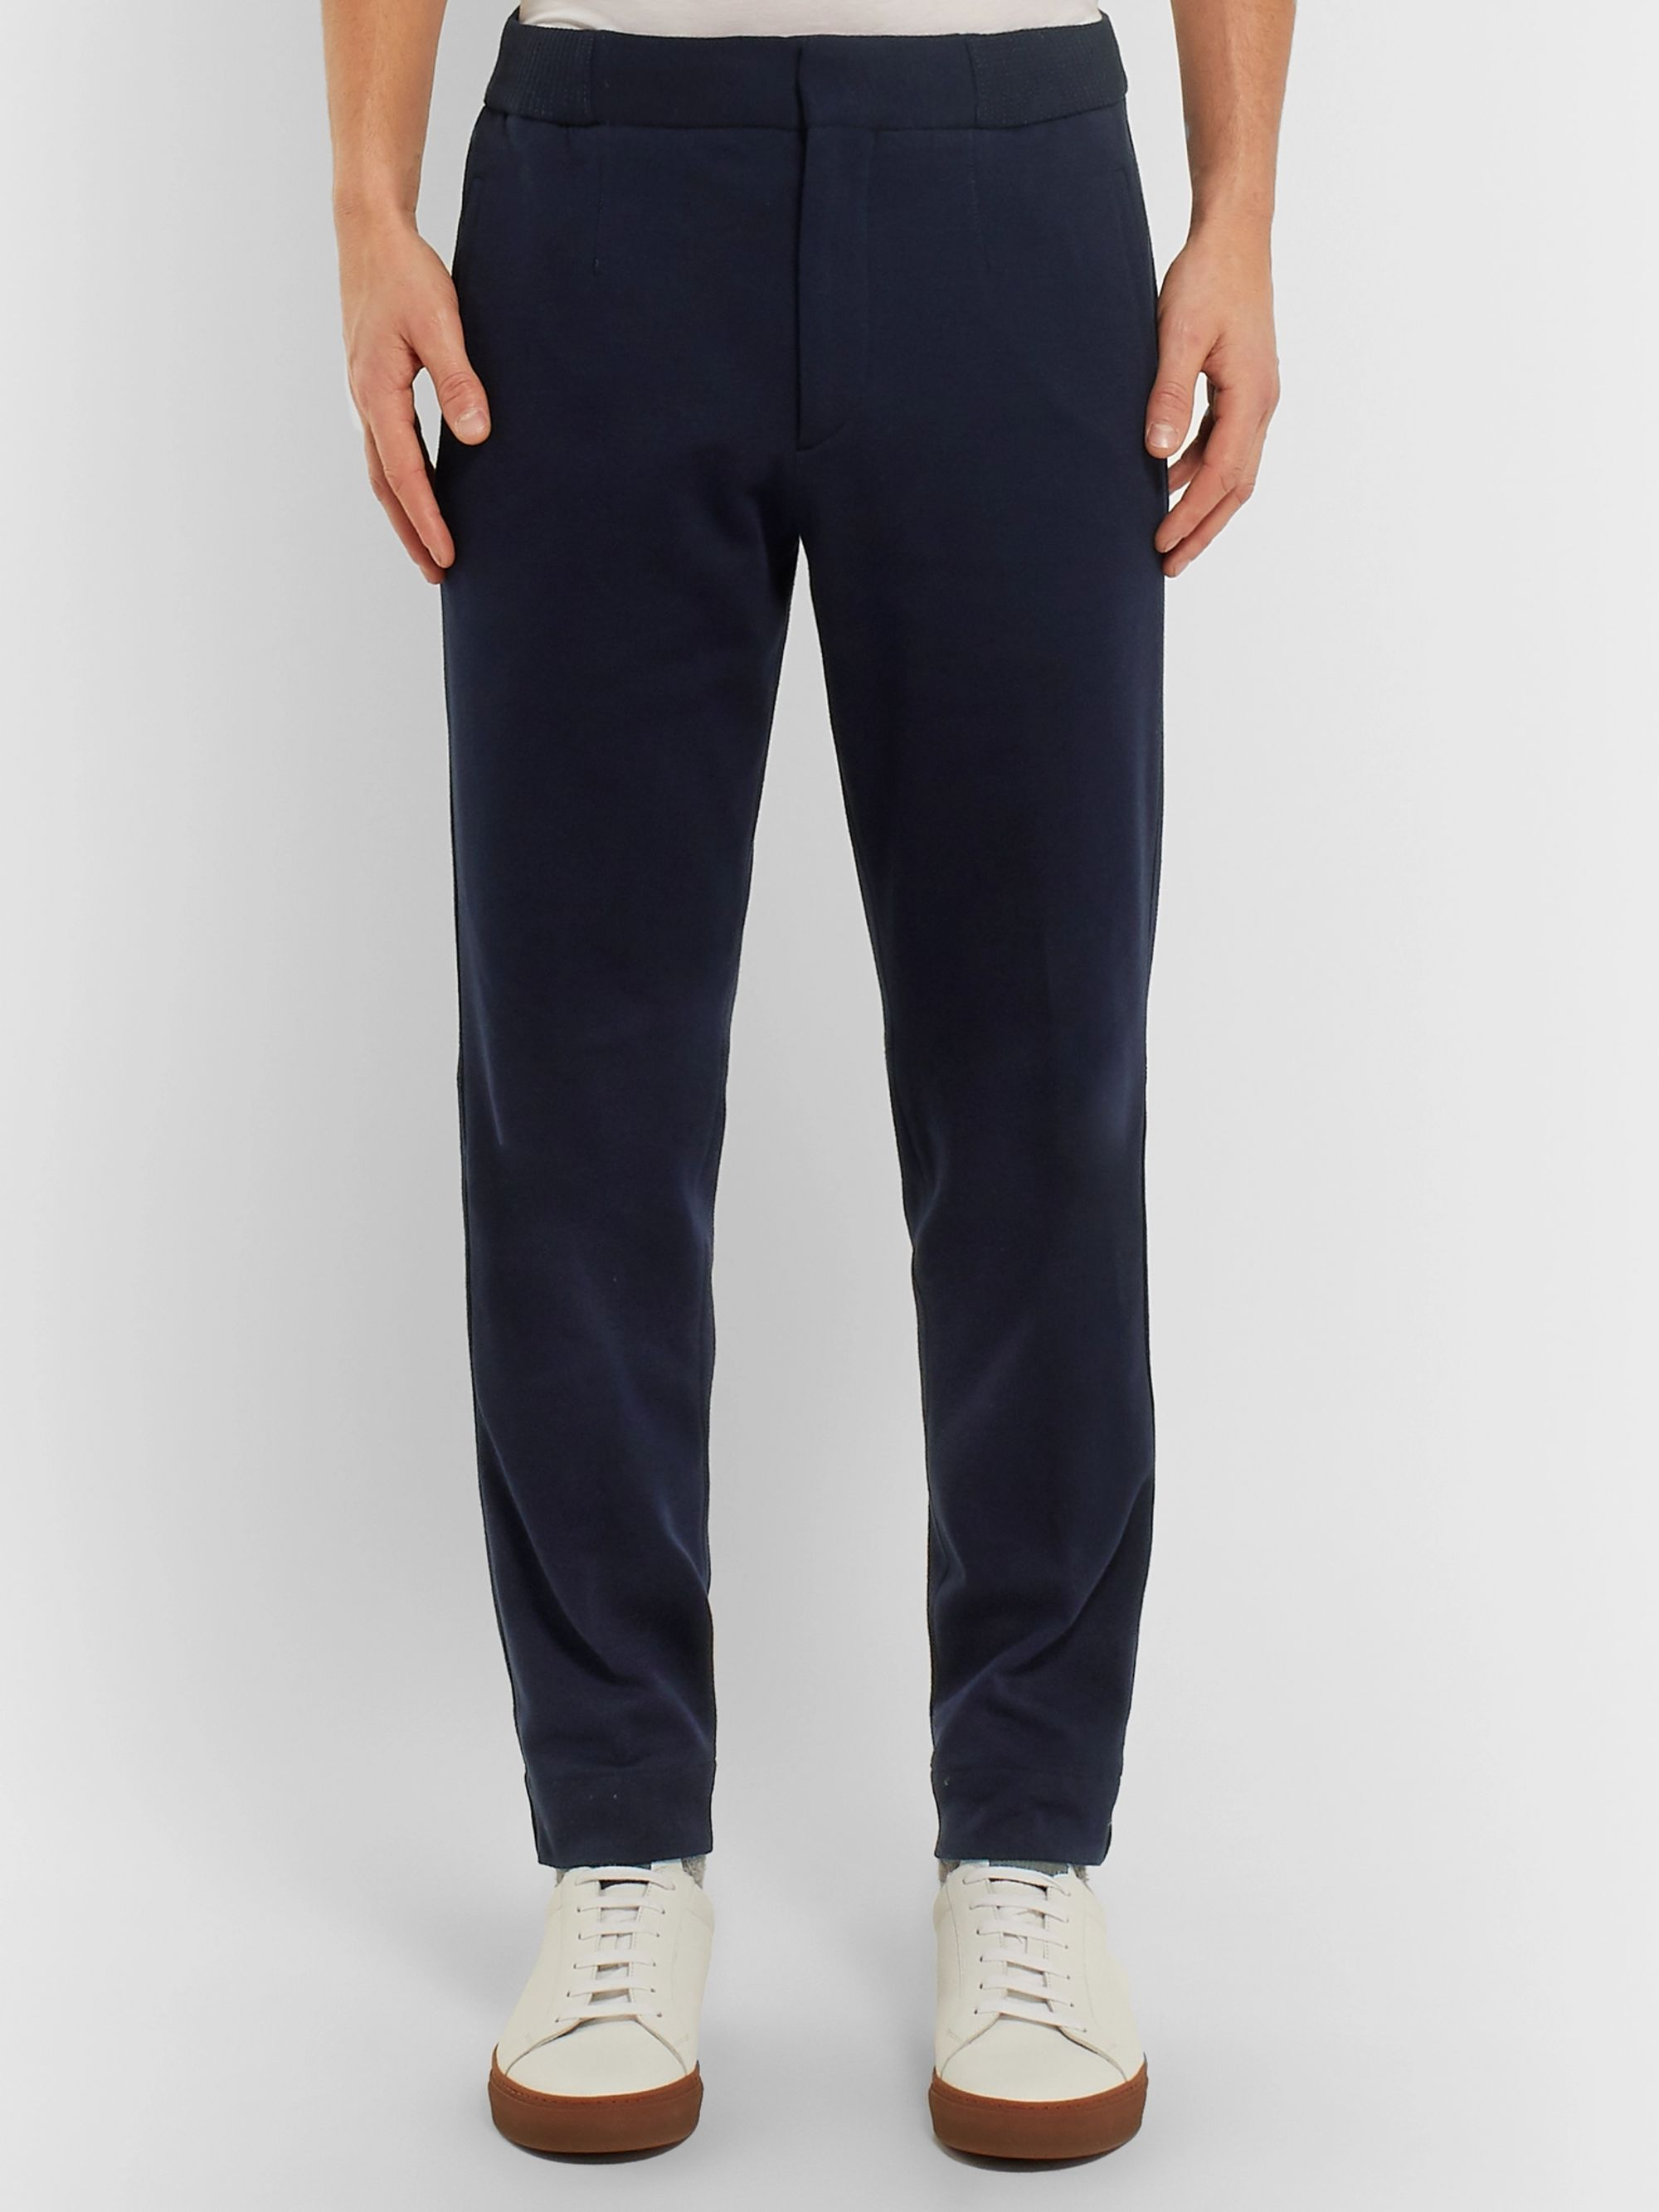 Ermenegildo Zegna Tapered Cotton and Silk-Blend Jersey Sweatpants